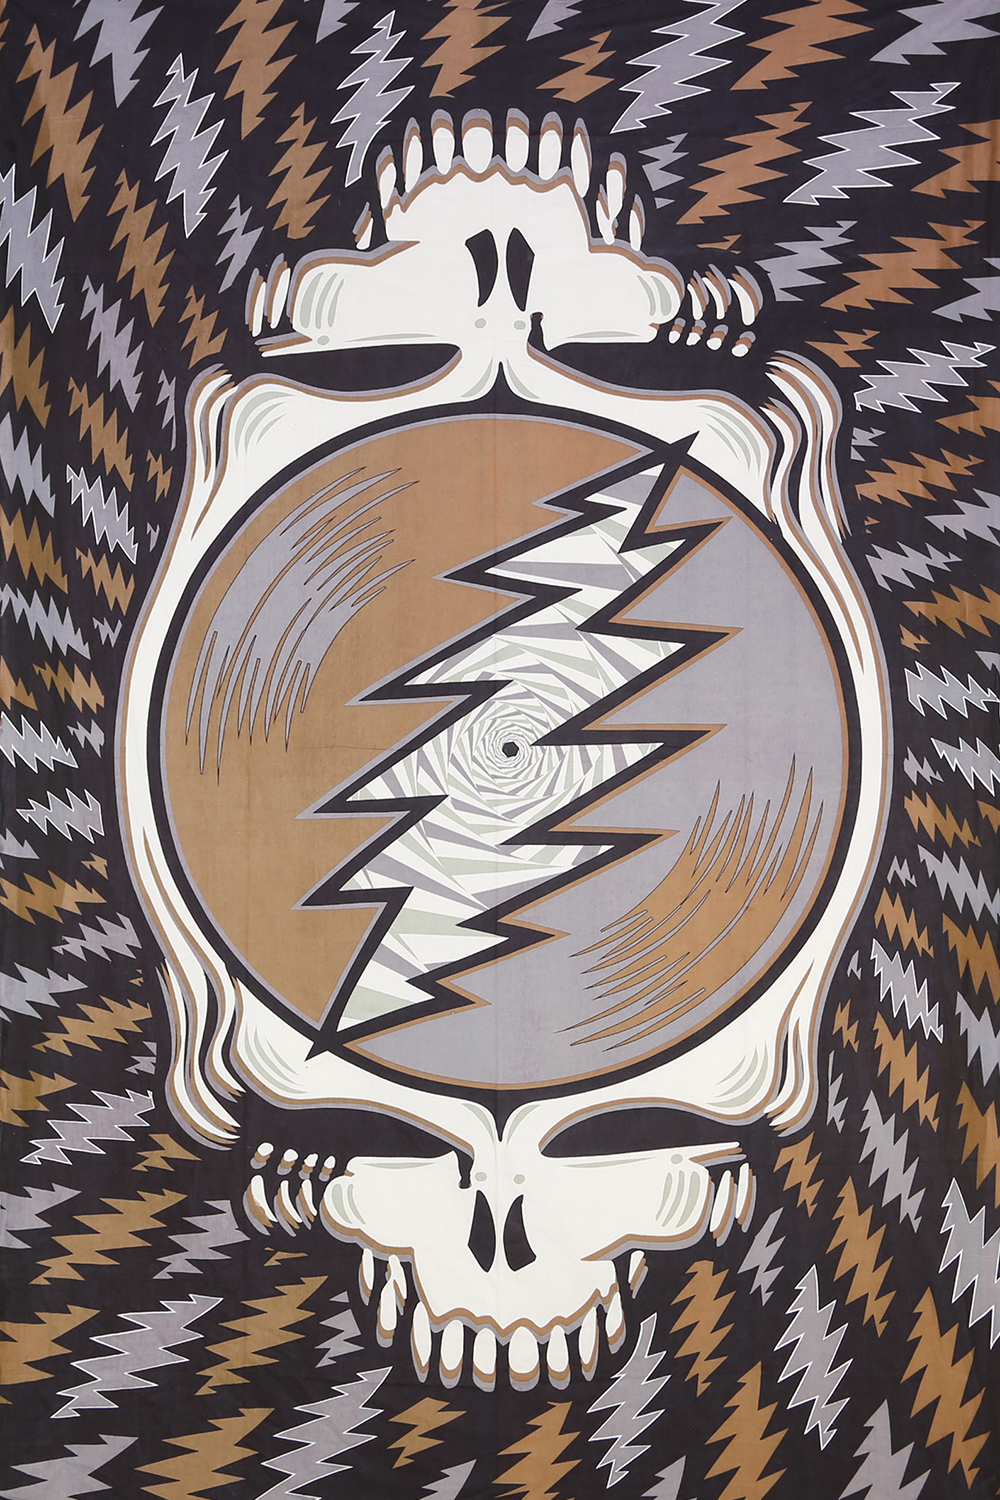 GRATEFUL DEAD SPIN YOUR FACE EARTH TAPESTRY